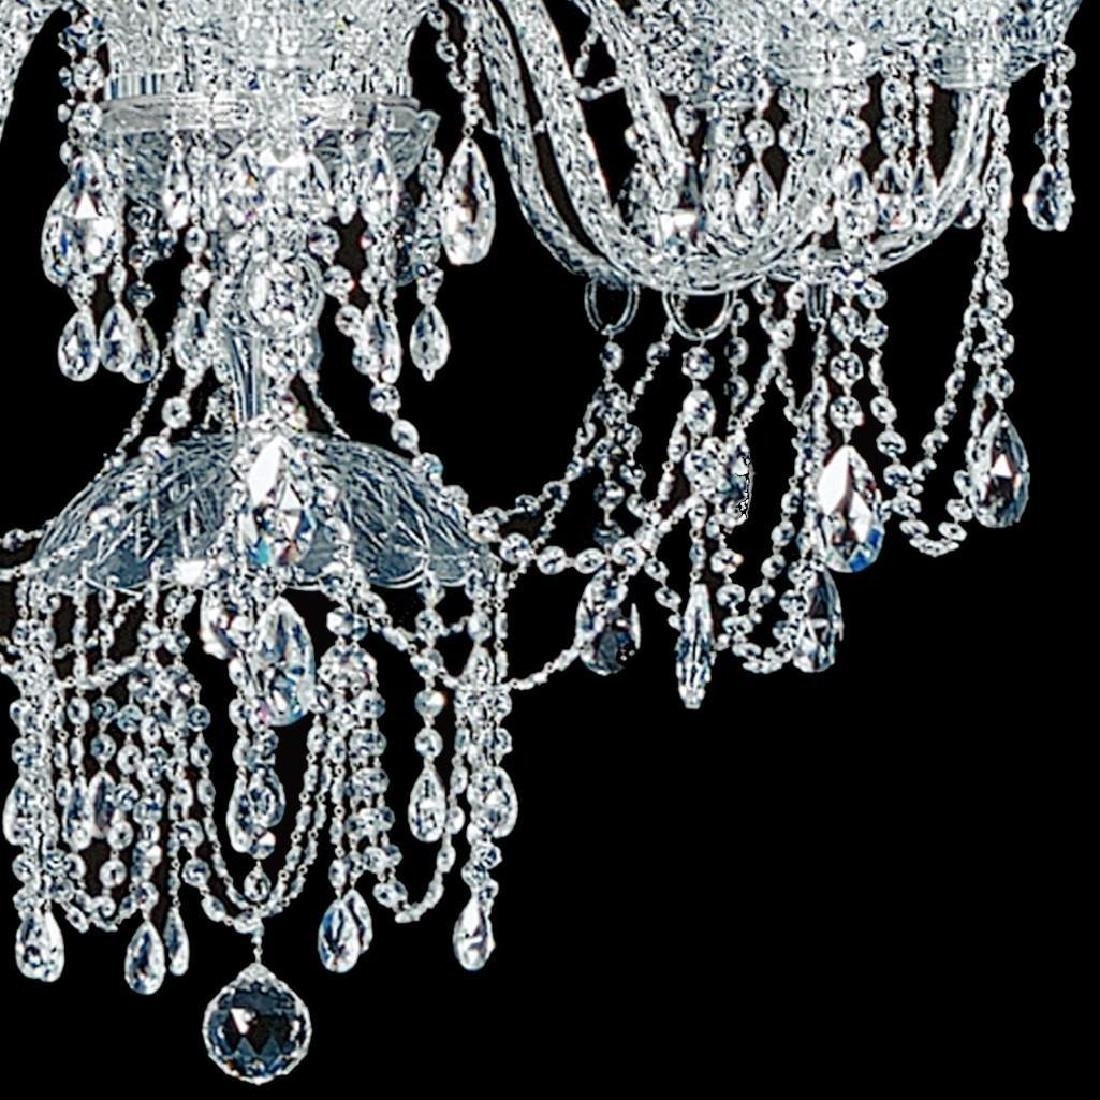 Winter Elegance - 16 Light Crystal Chandelier with - 3